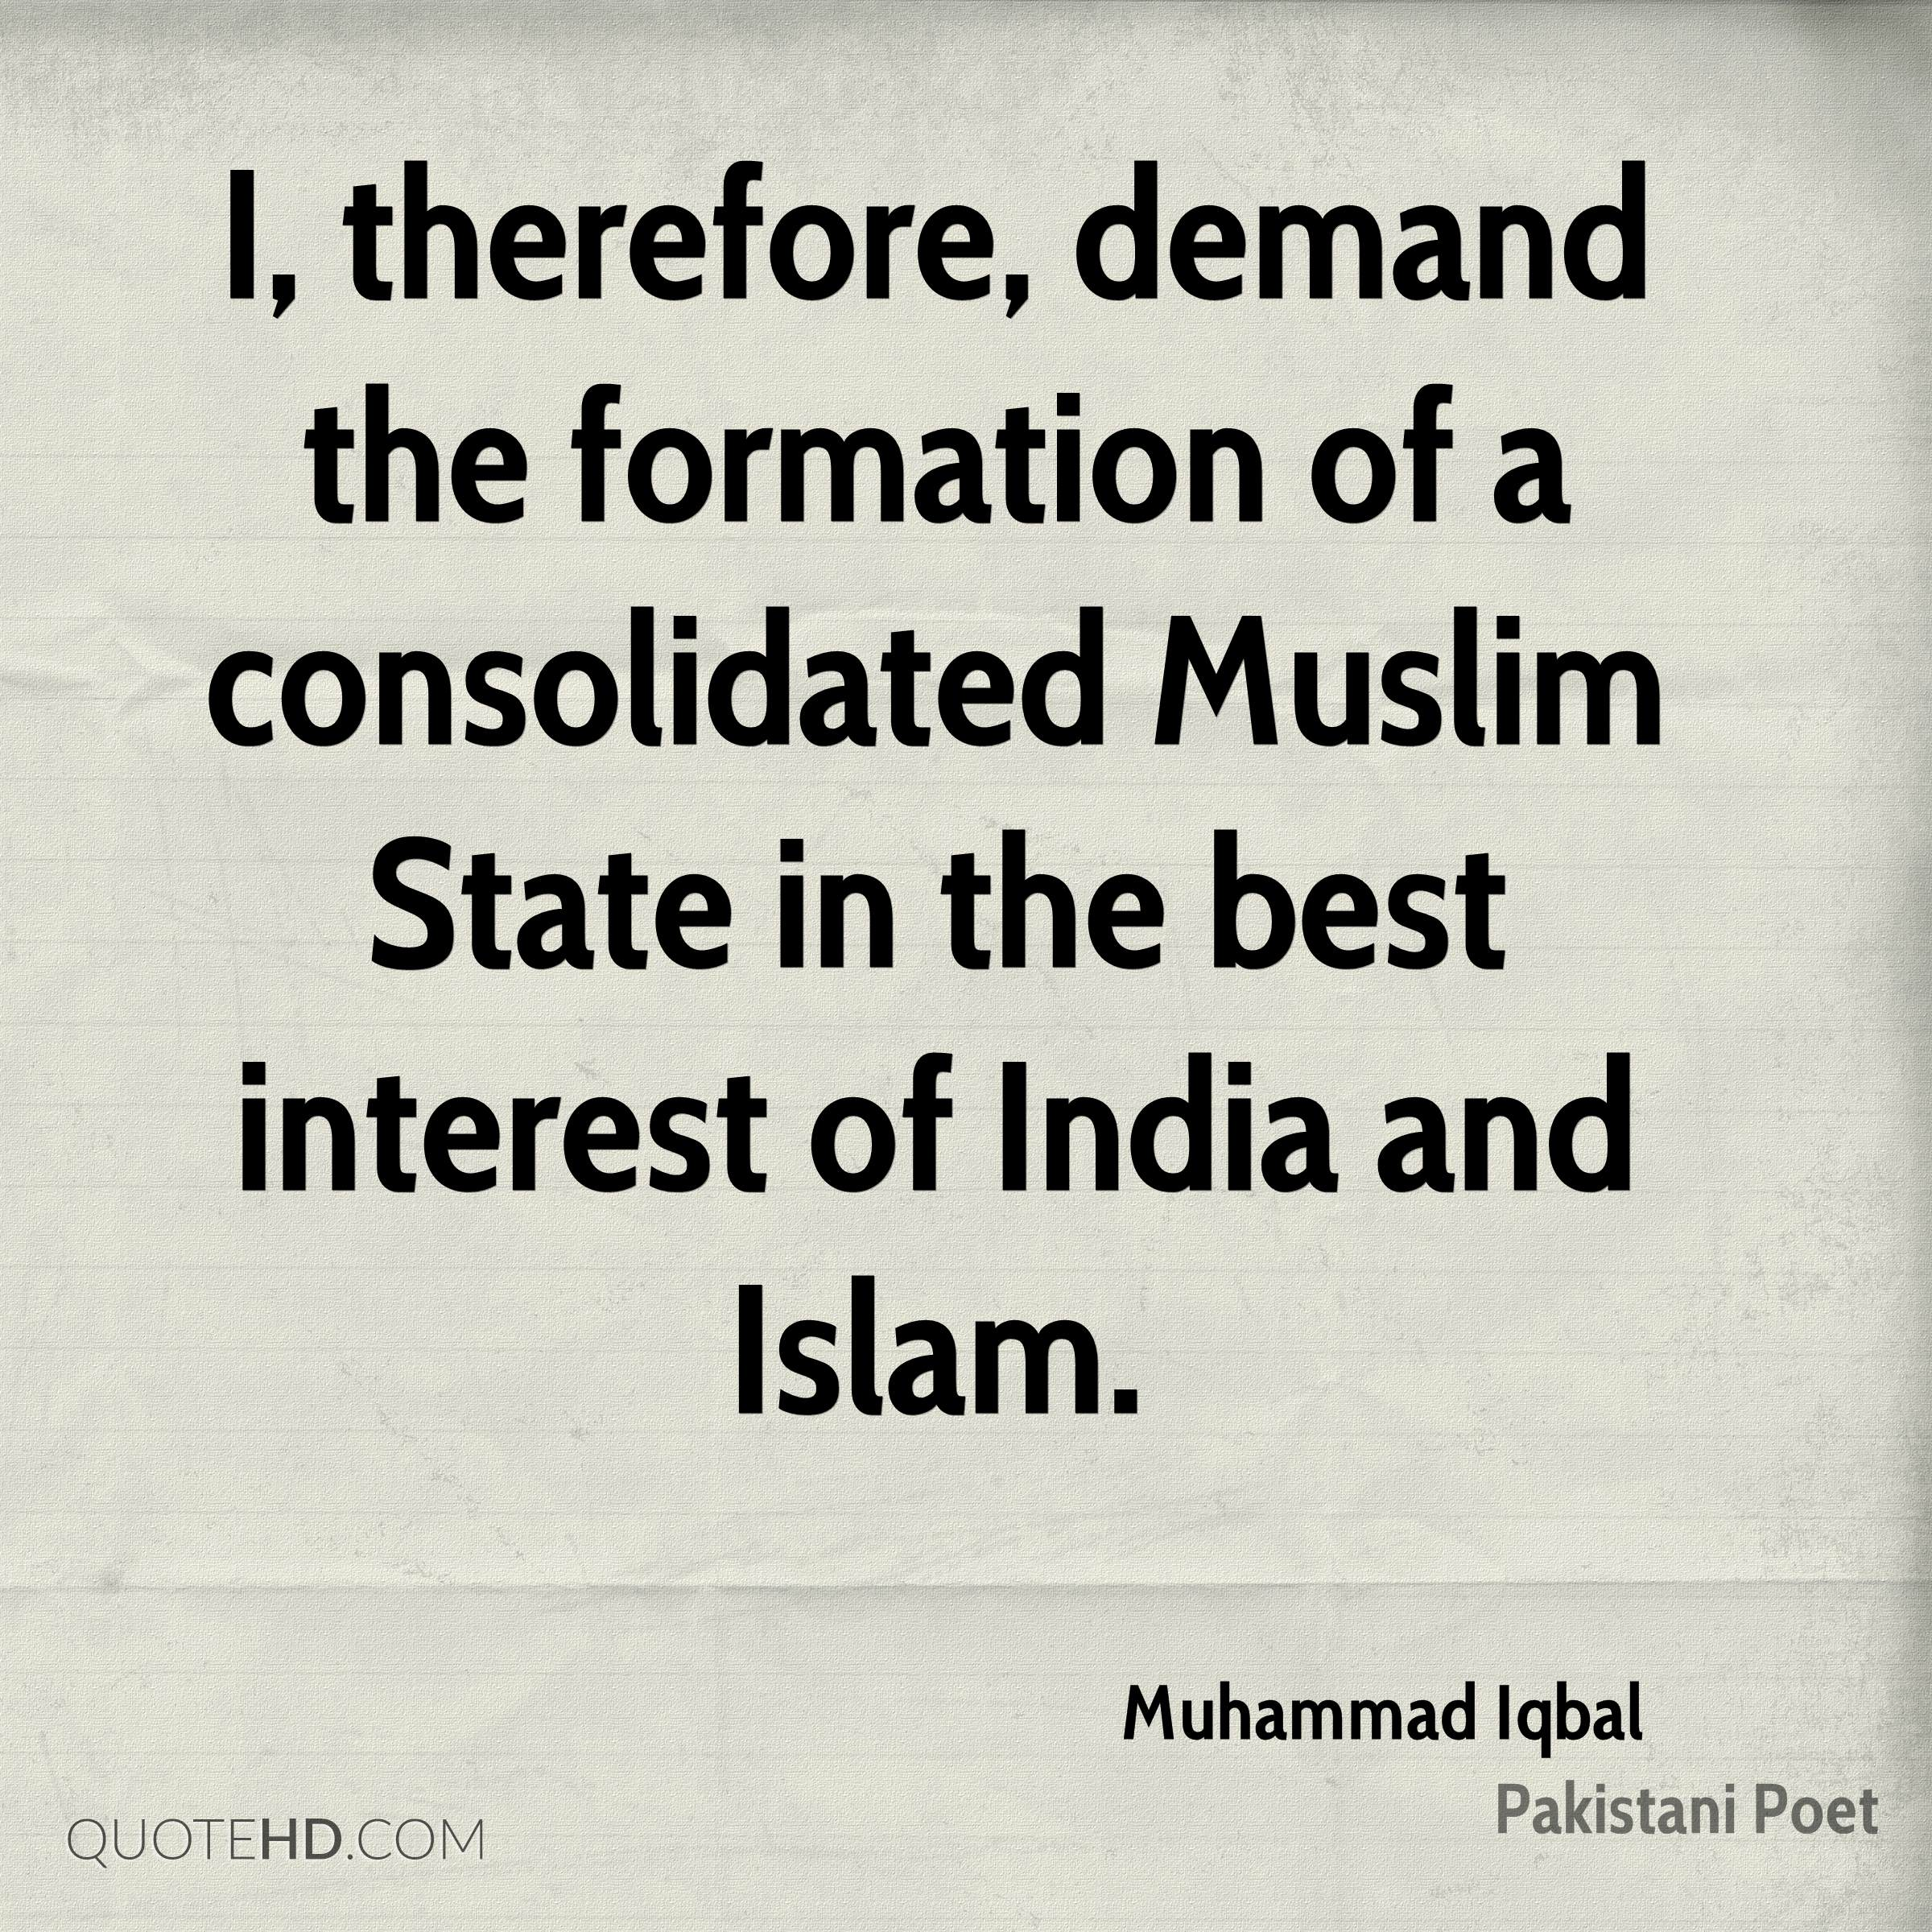 I, therefore, demand the formation of a consolidated Muslim State in the best interest of India and Islam.